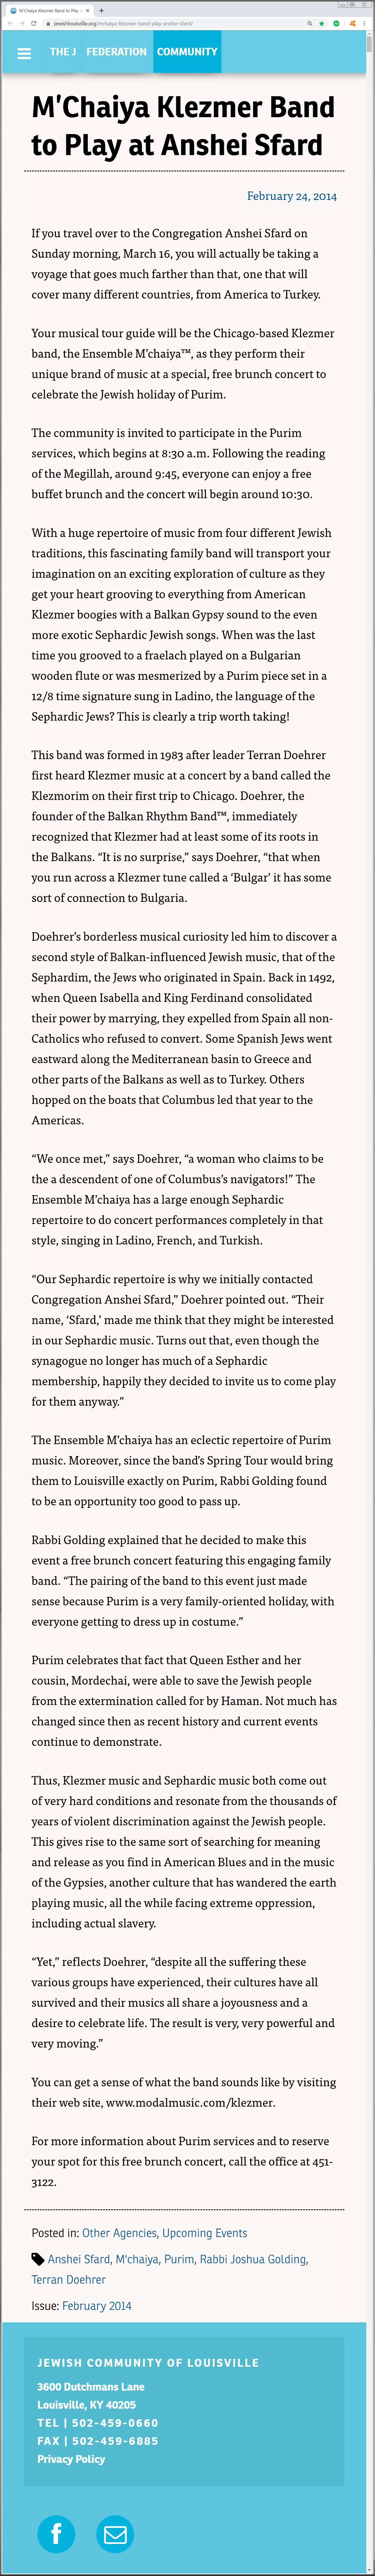 Article on the Louisville, Kentucky Jewish Federation's February 14, 2014 Jewish Community News web page about the Ensemble M'chaiya (tm).